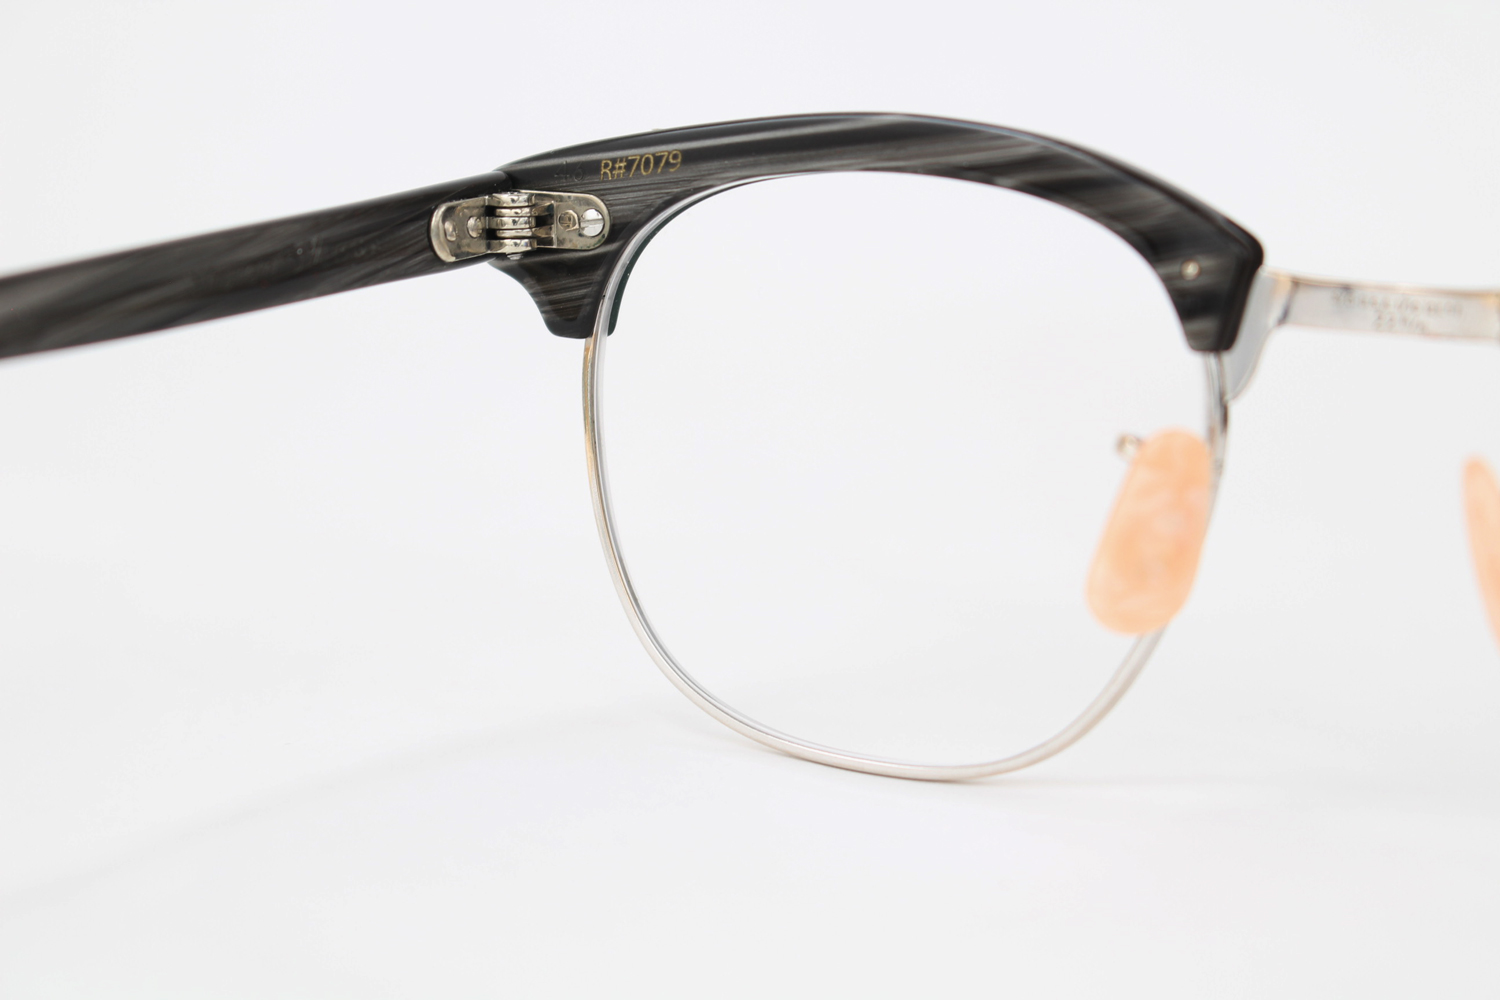 TS_Shuron_Optical_Company_Combination_1_10-12K_Gold_Filled_with_Cellulose_Acetate_5